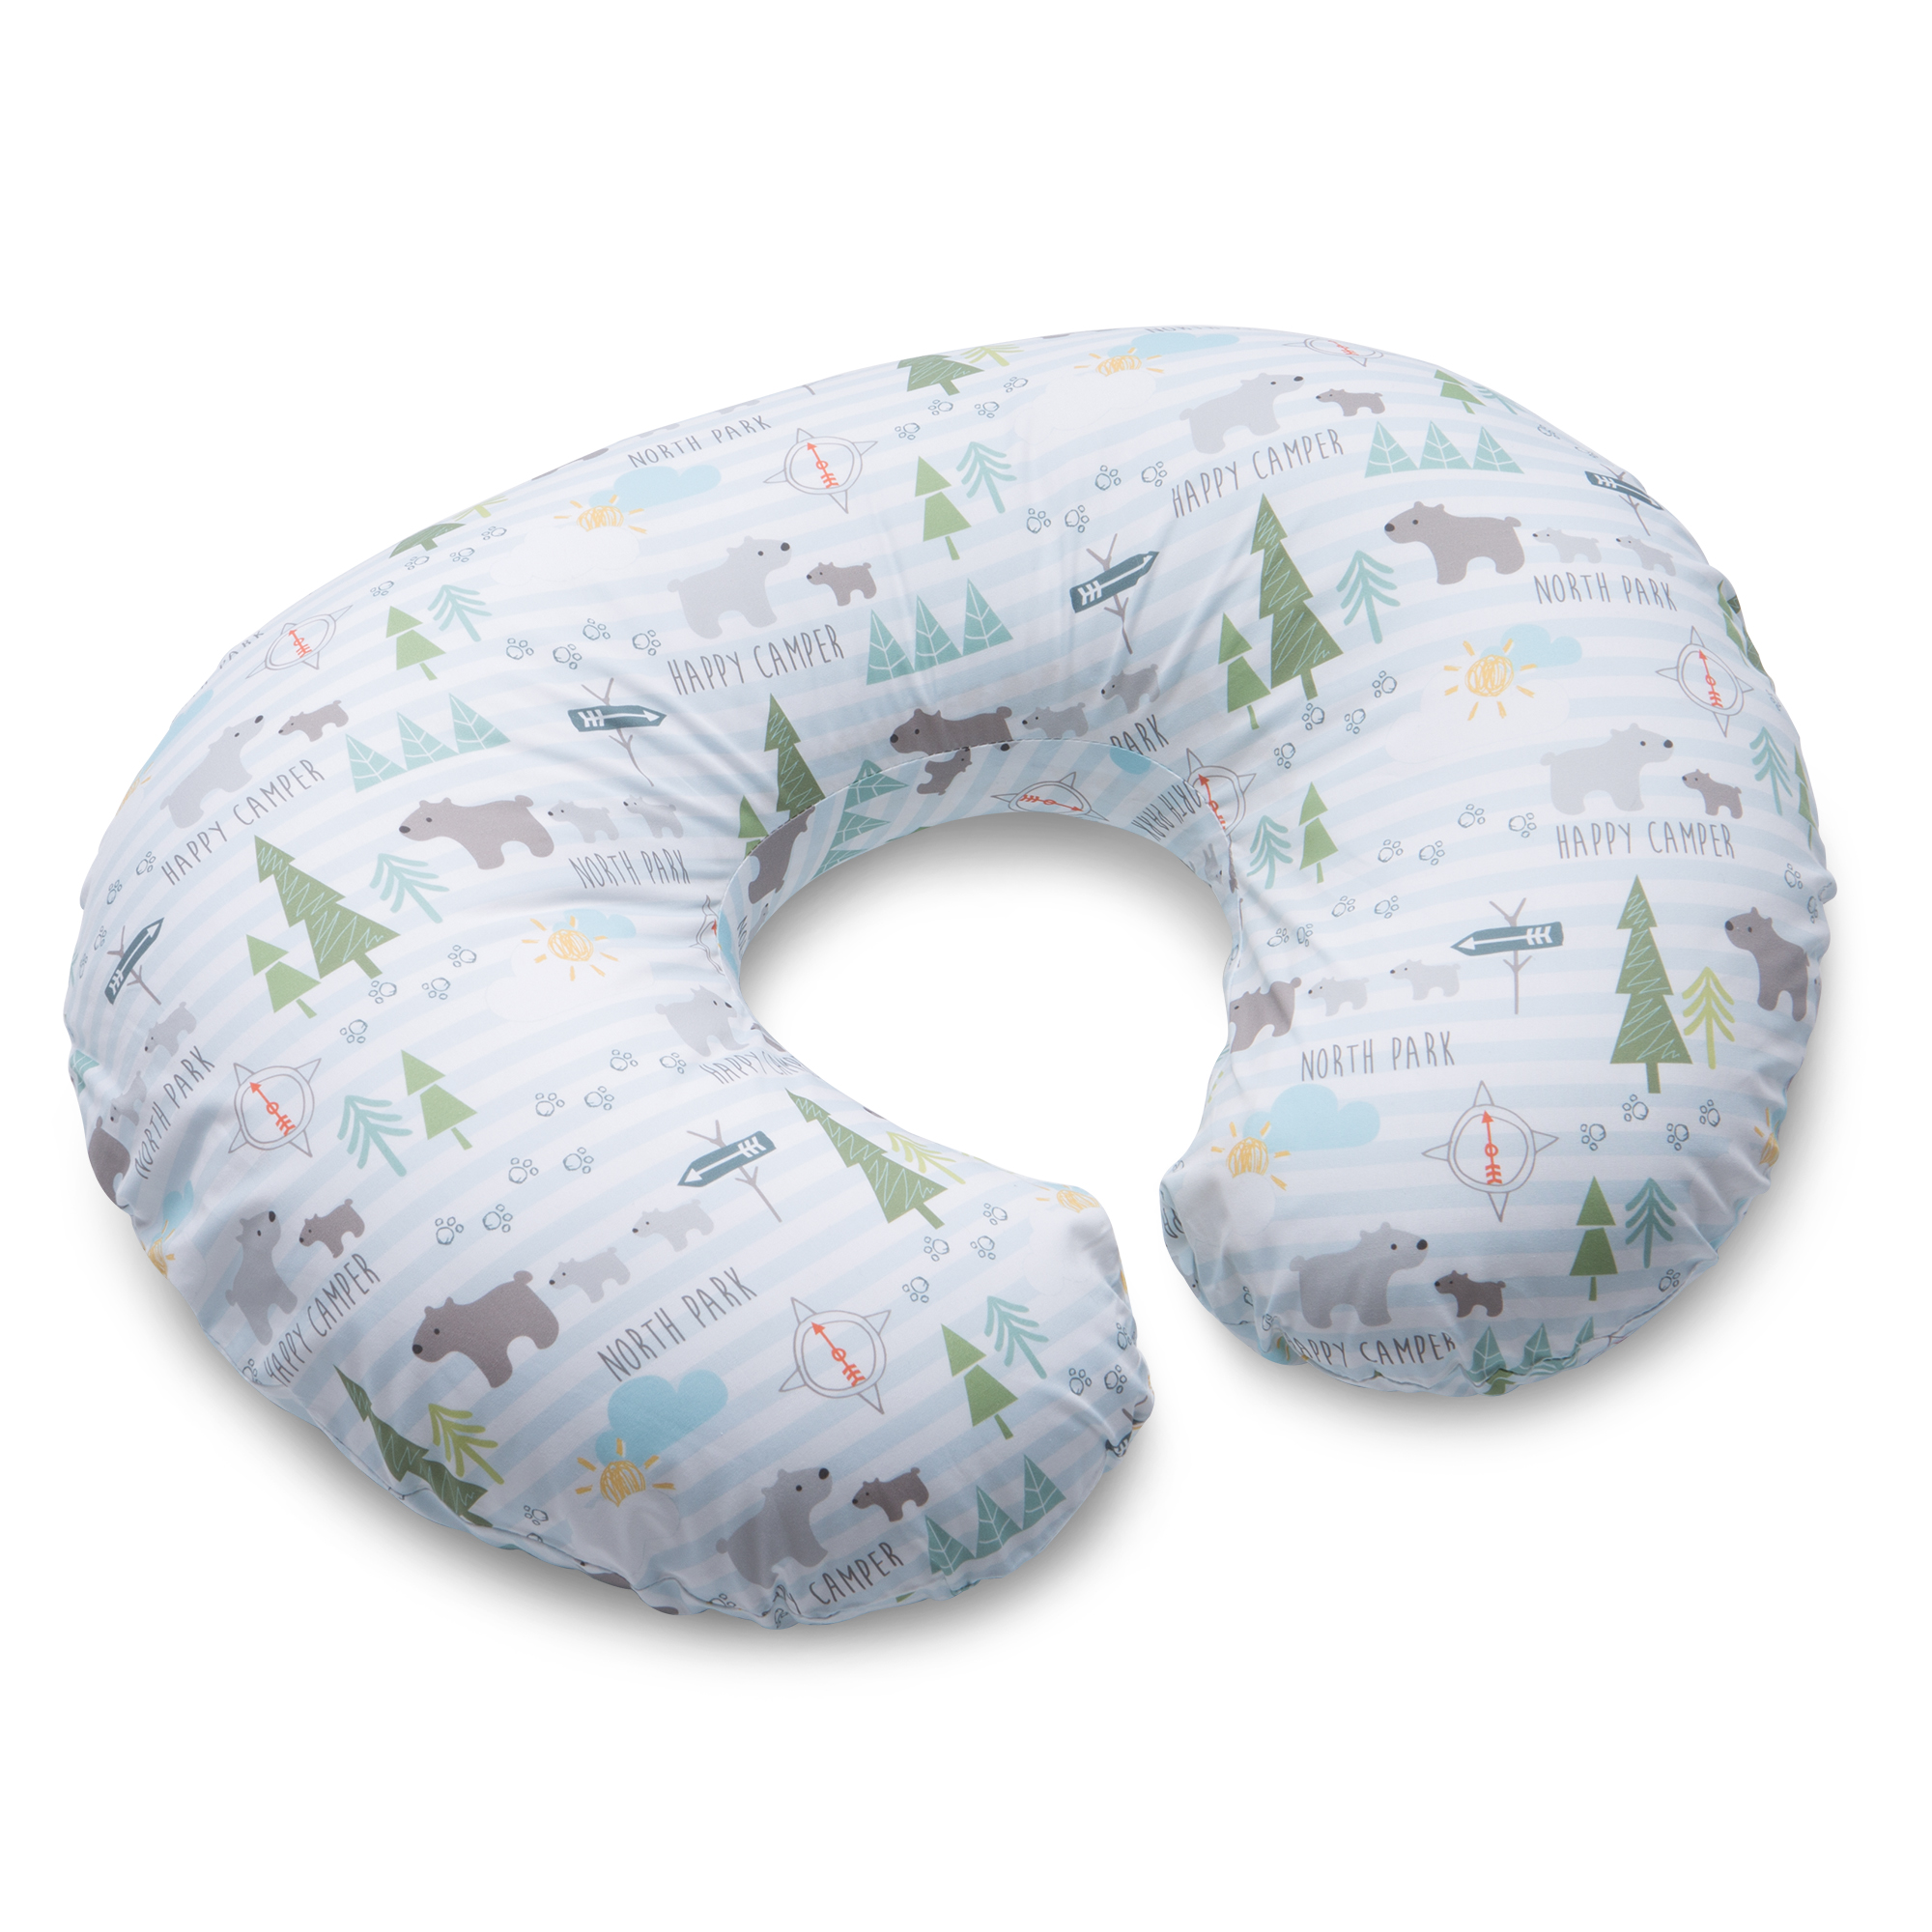 Boppy Cotton Blend Nursing Pillow and Positioner North Park by Boppy